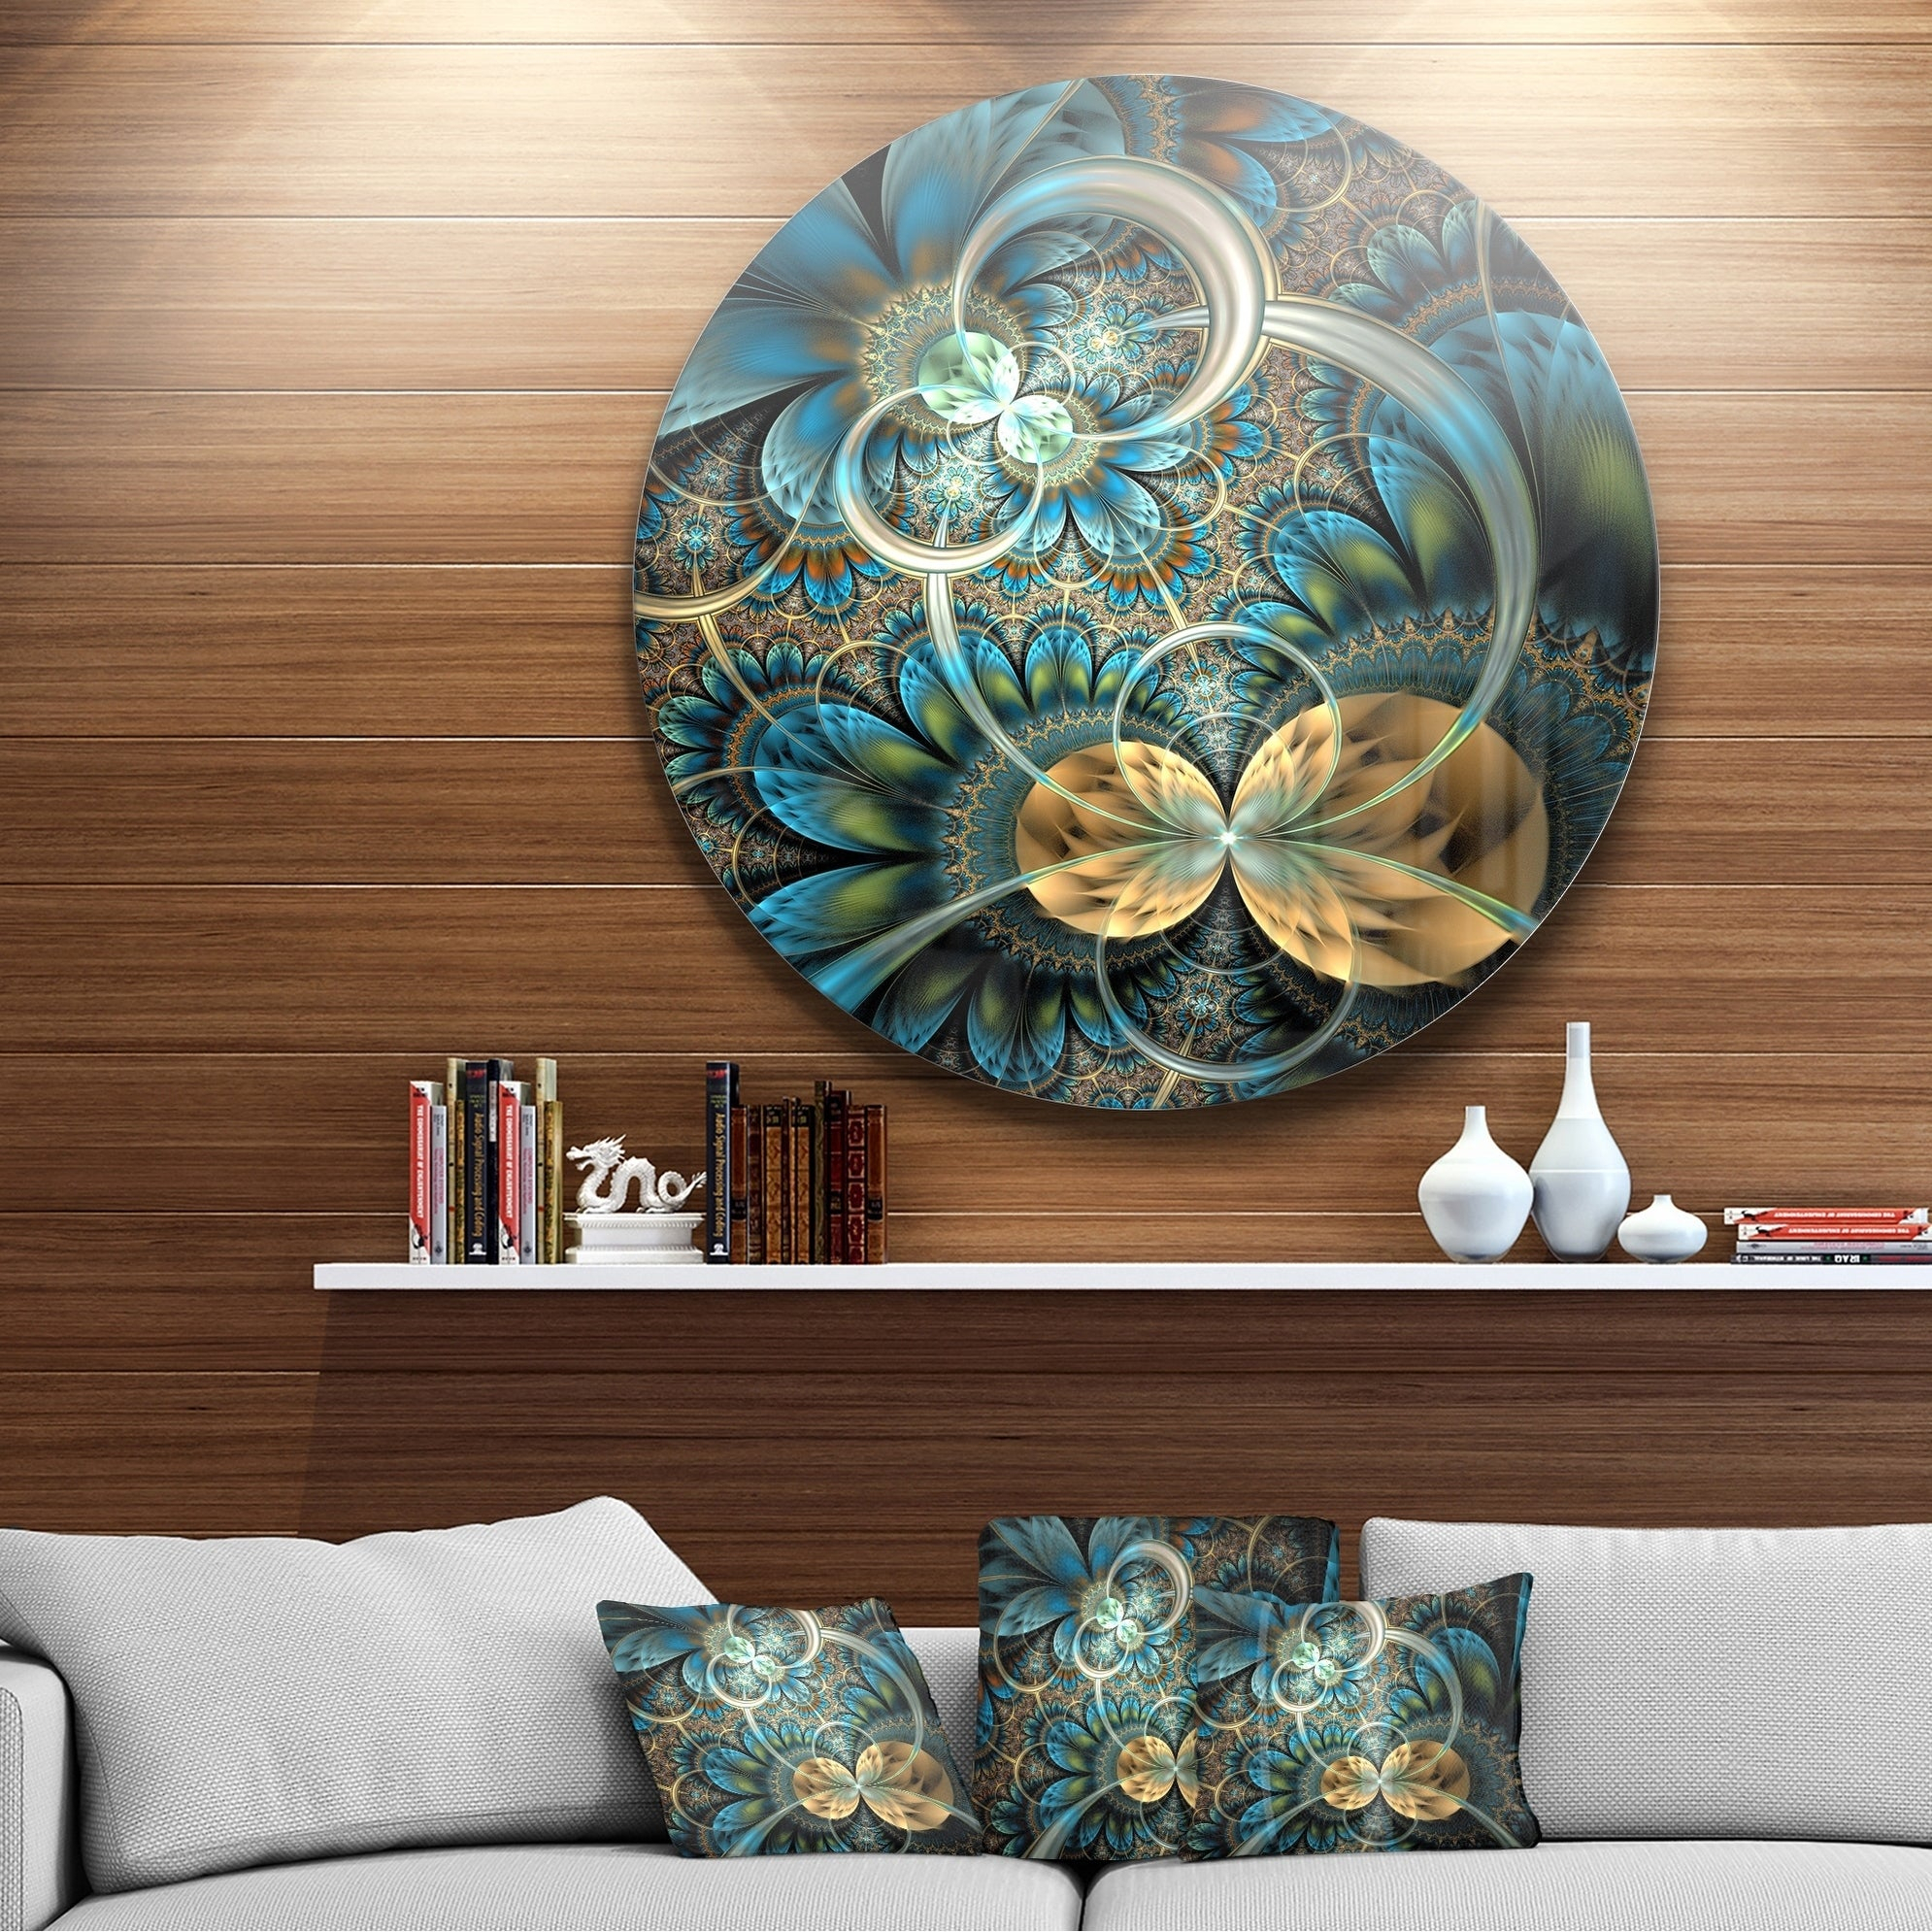 Metal Art | Find Great Art Gallery Deals Shopping At Overstock With Regard To Abstract Bar And Panel Wall Decor (Image 15 of 30)